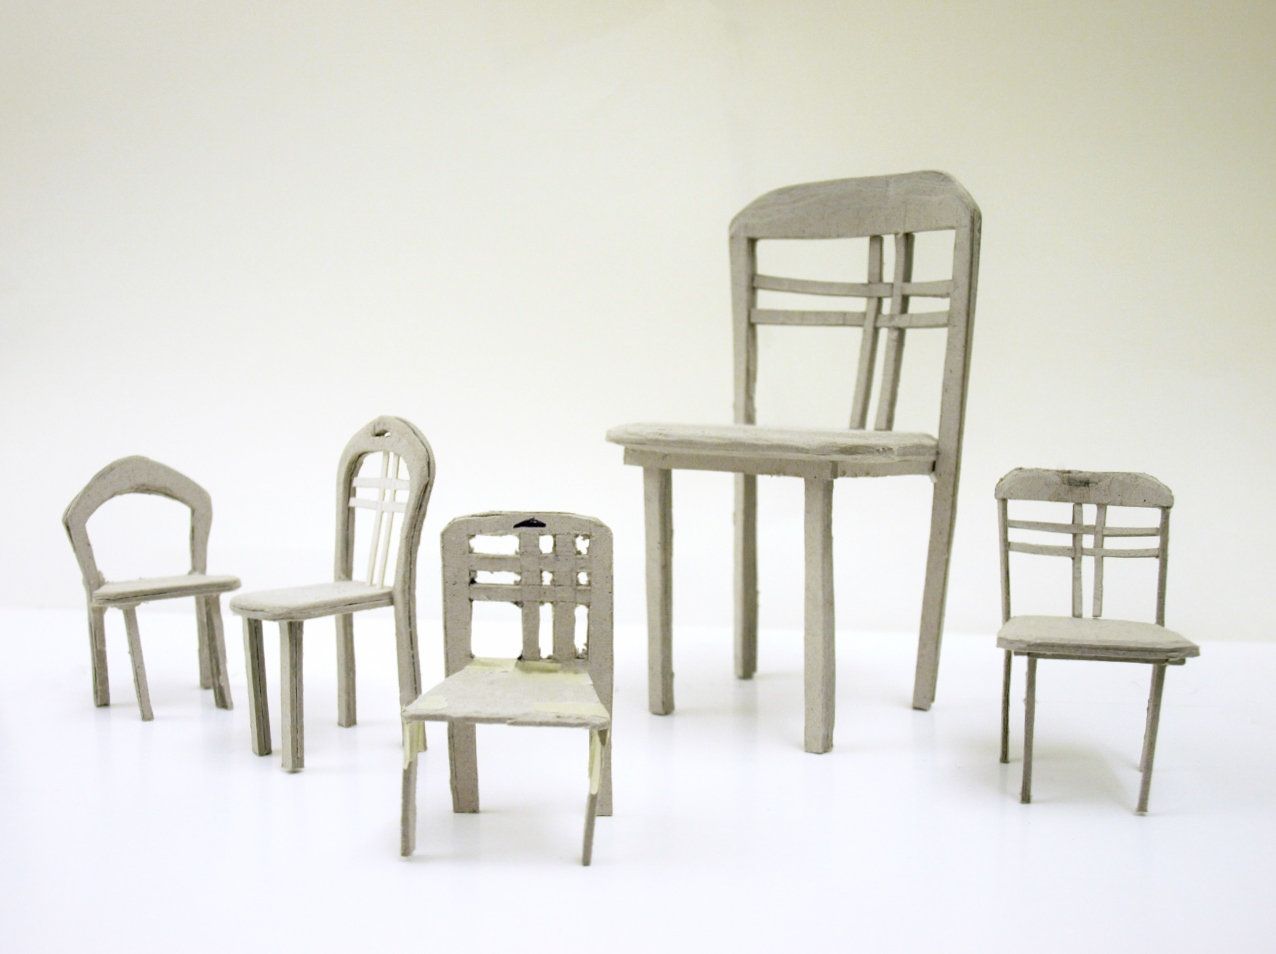 Some minature models of possible chairs